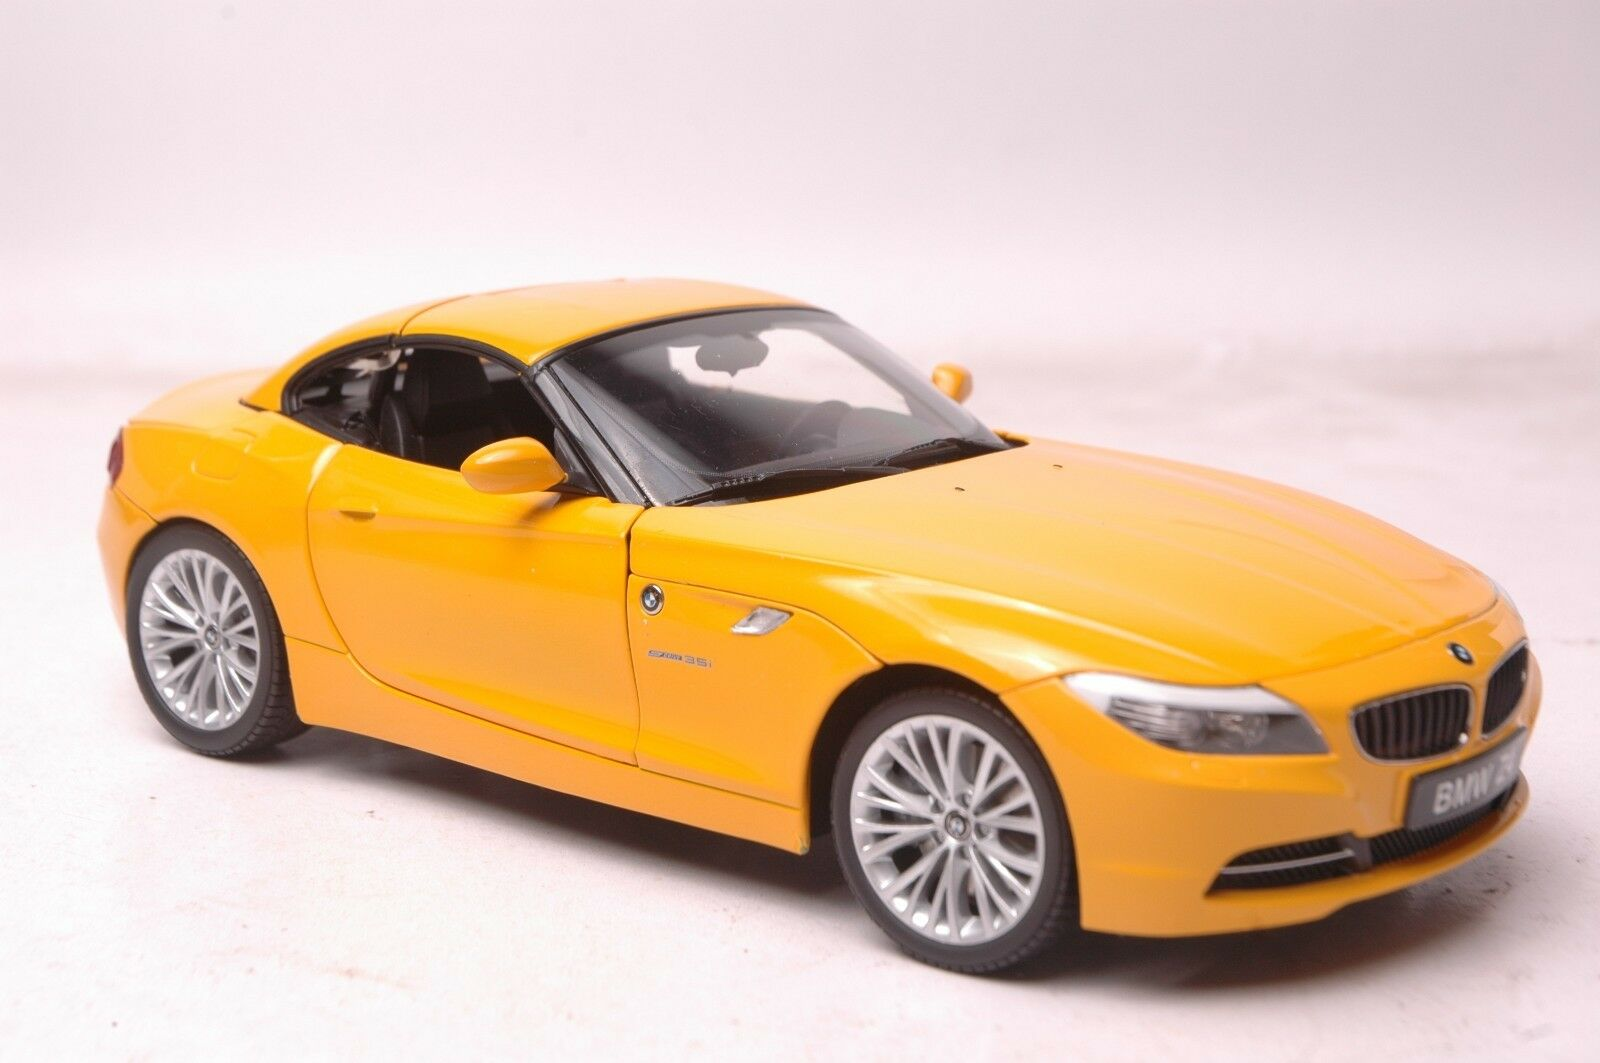 bmw z4 sdrive35i e89 car model in scale 1 18 yellow. Black Bedroom Furniture Sets. Home Design Ideas